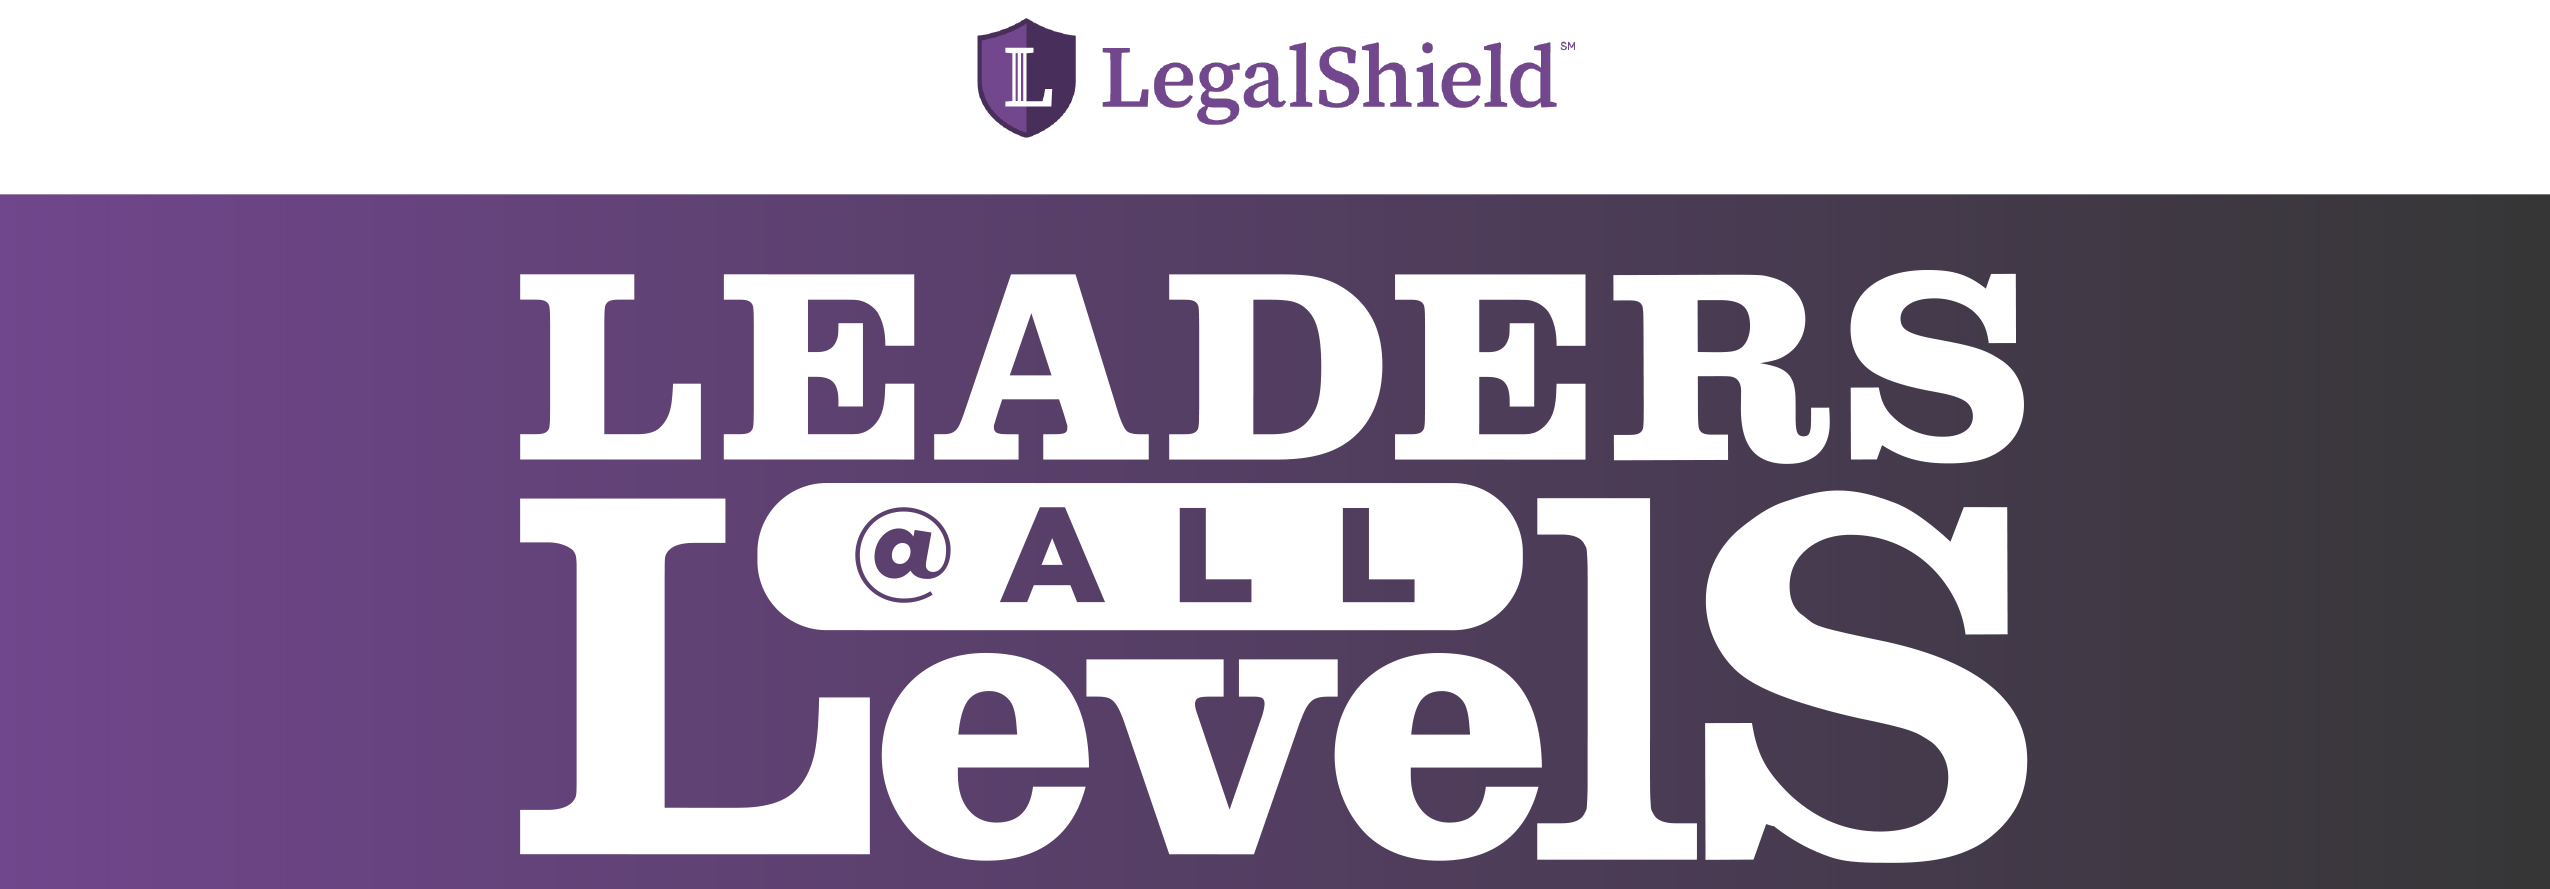 2018 LegalShield Leaders@AllLevels Convention